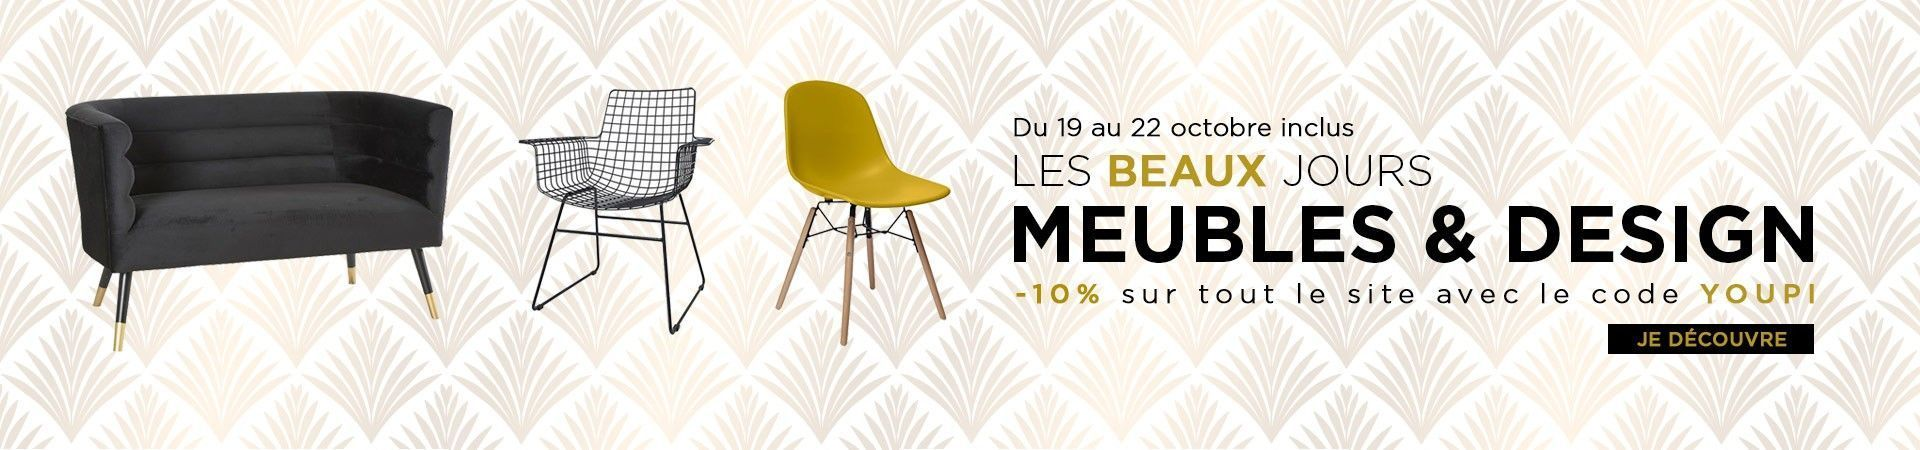 remise 10 pourcent weekend meubles design